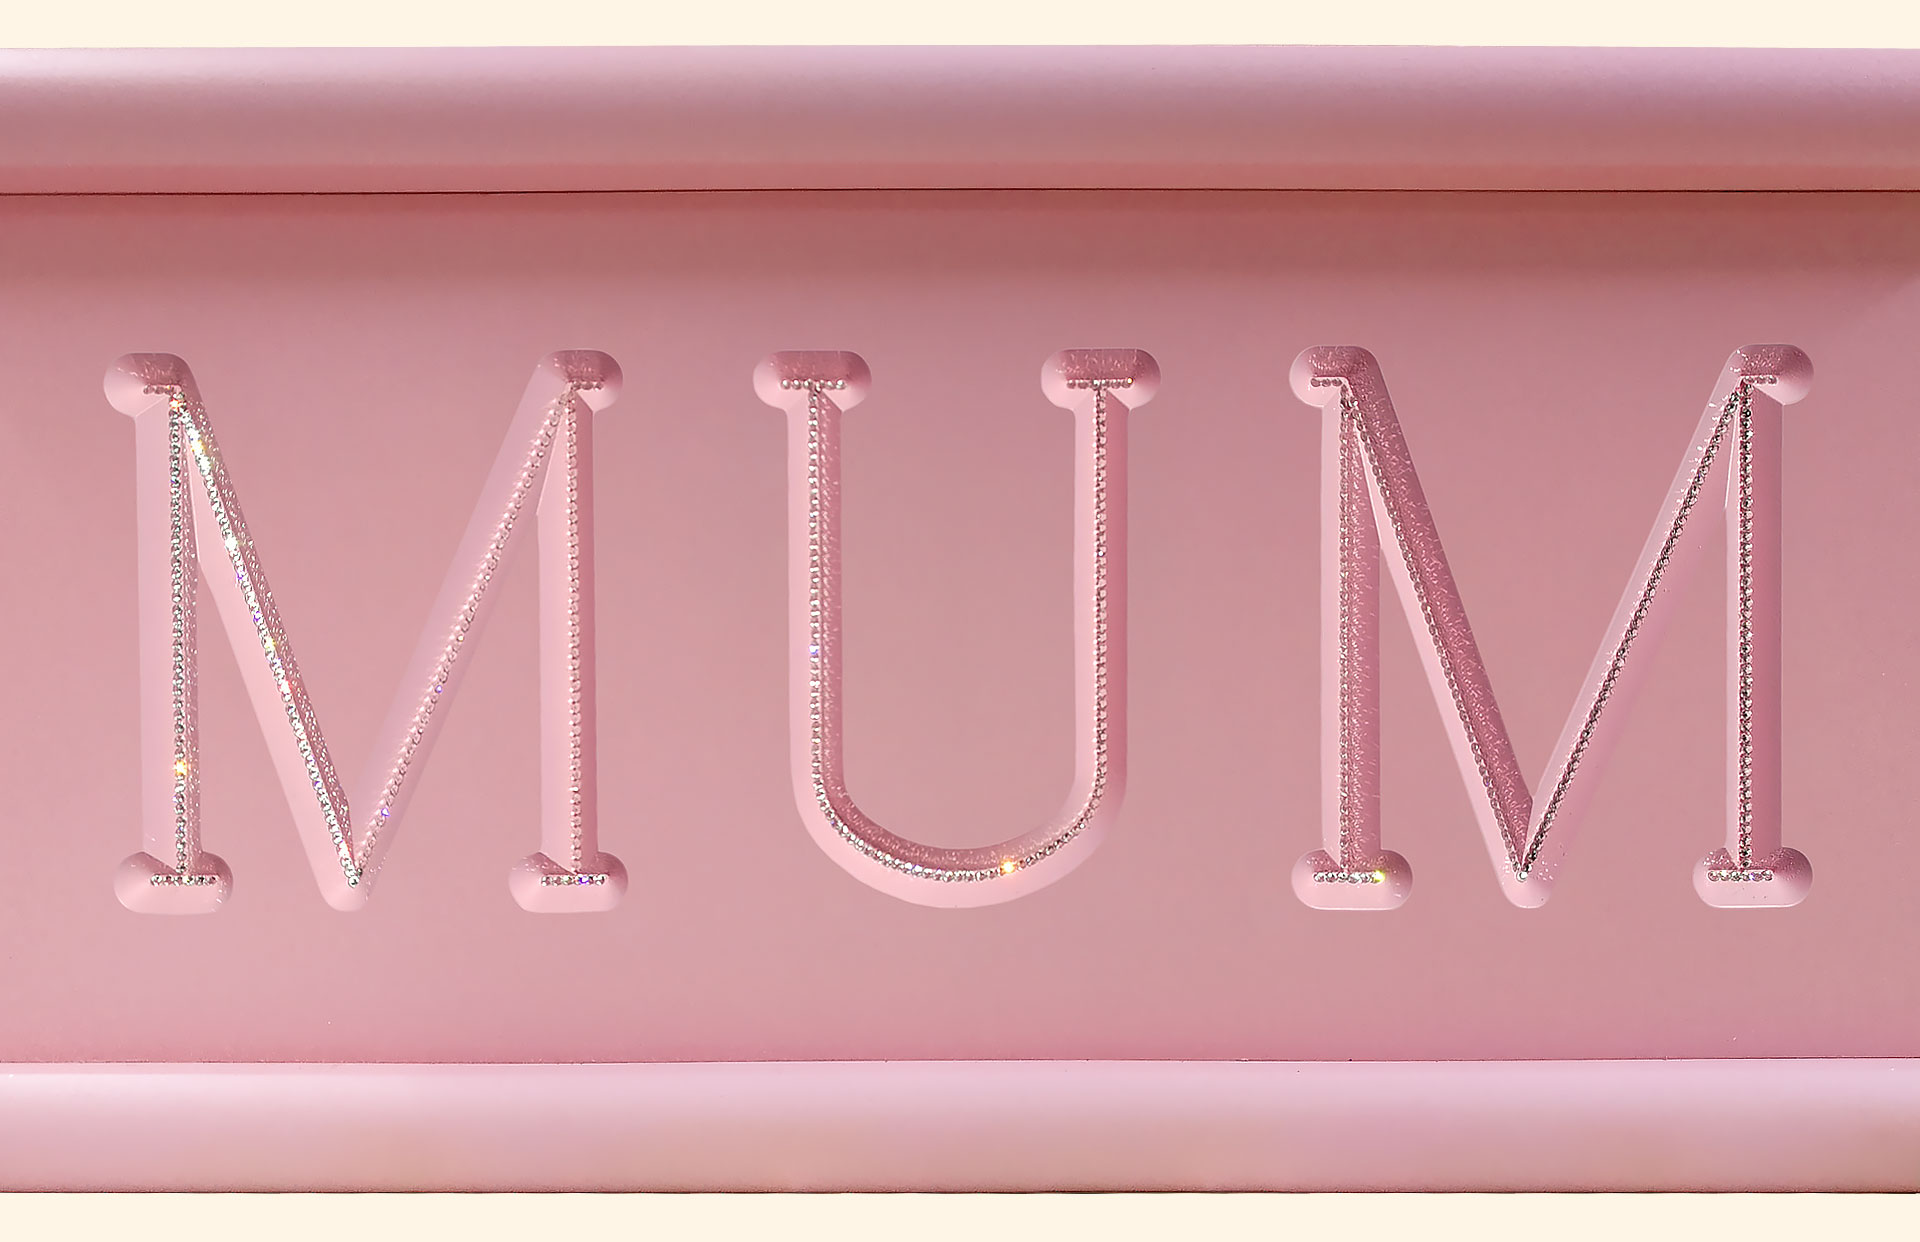 Carved Cremated Remains caskets in pink with crystals details